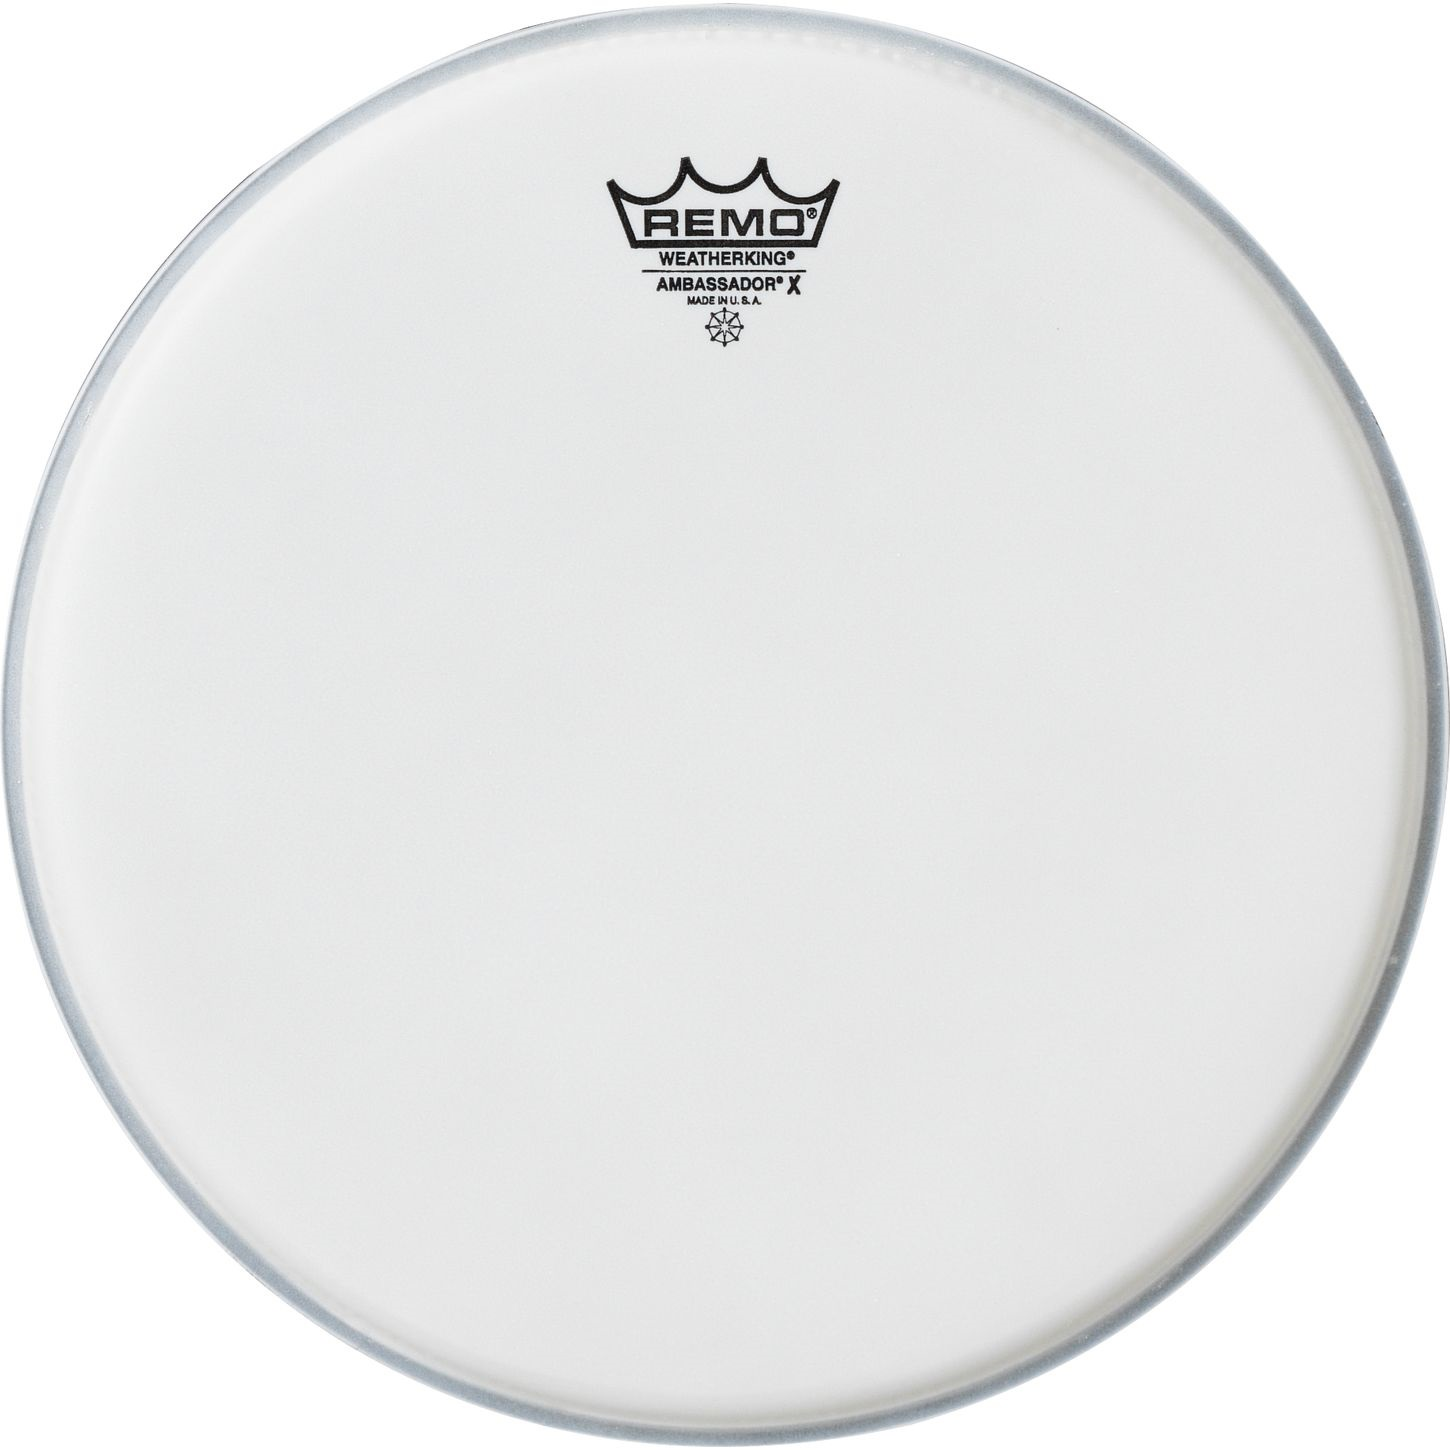 "Remo 14"" Ambassador X Coated"